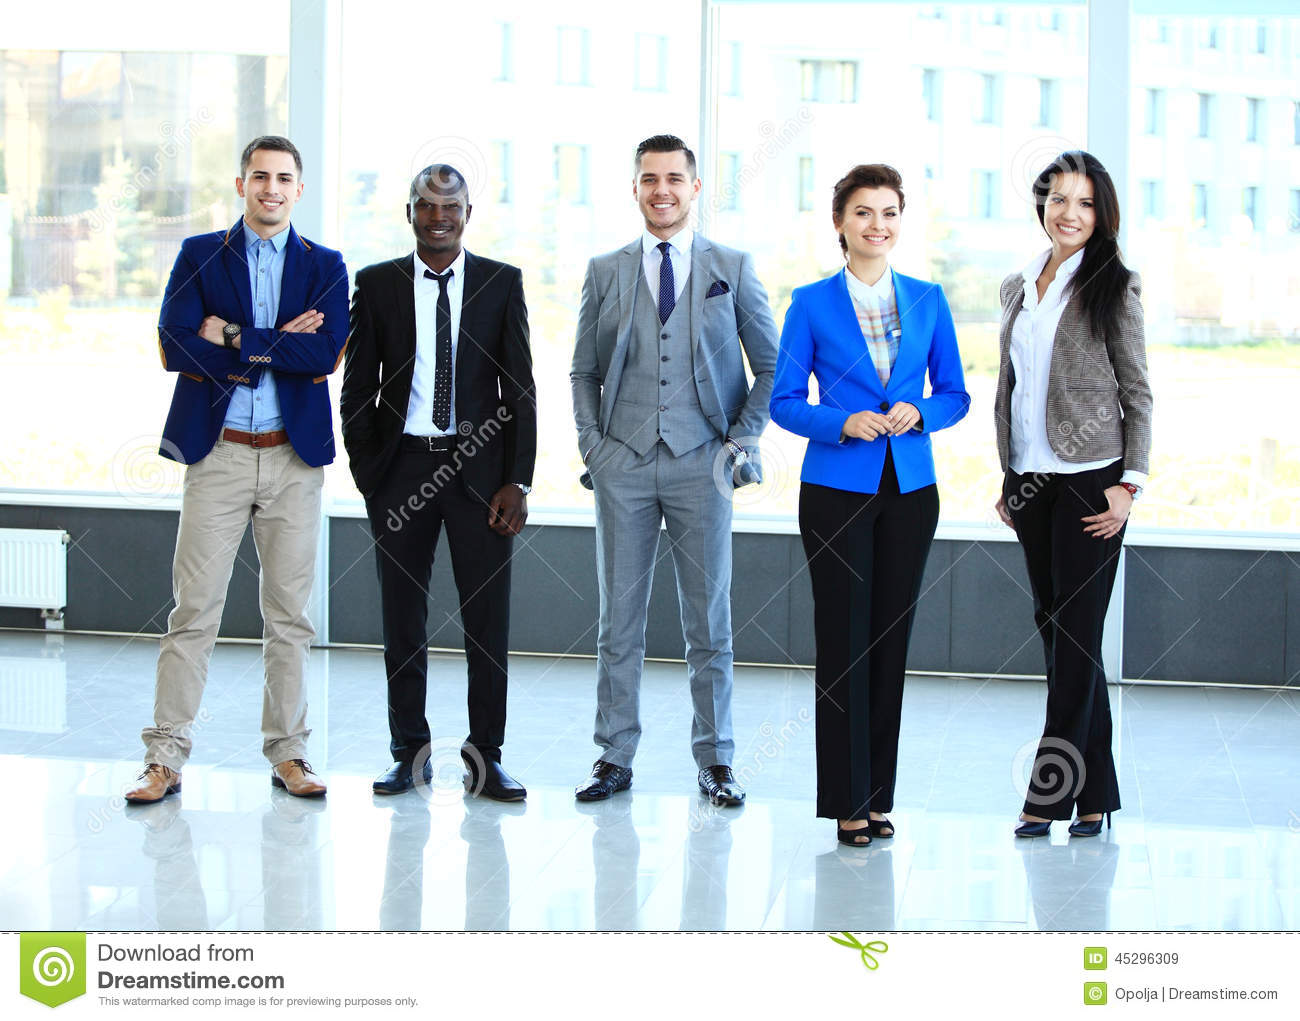 how to take a professional business photo